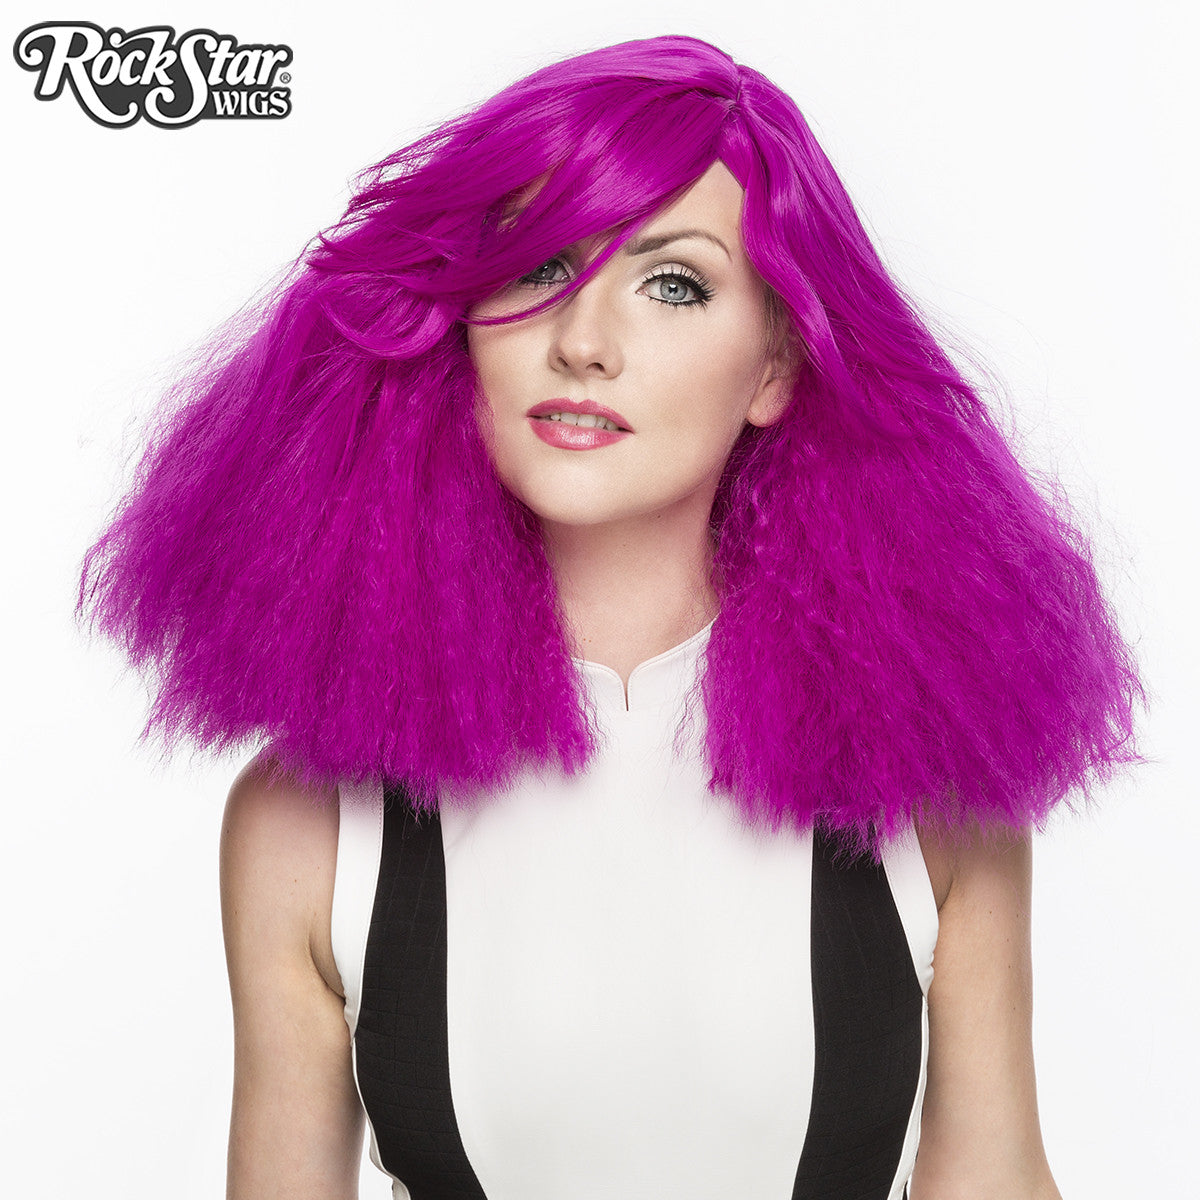 RockStar Wigs® <br> Dynamite™ Collection - Magenta-Cide -00164